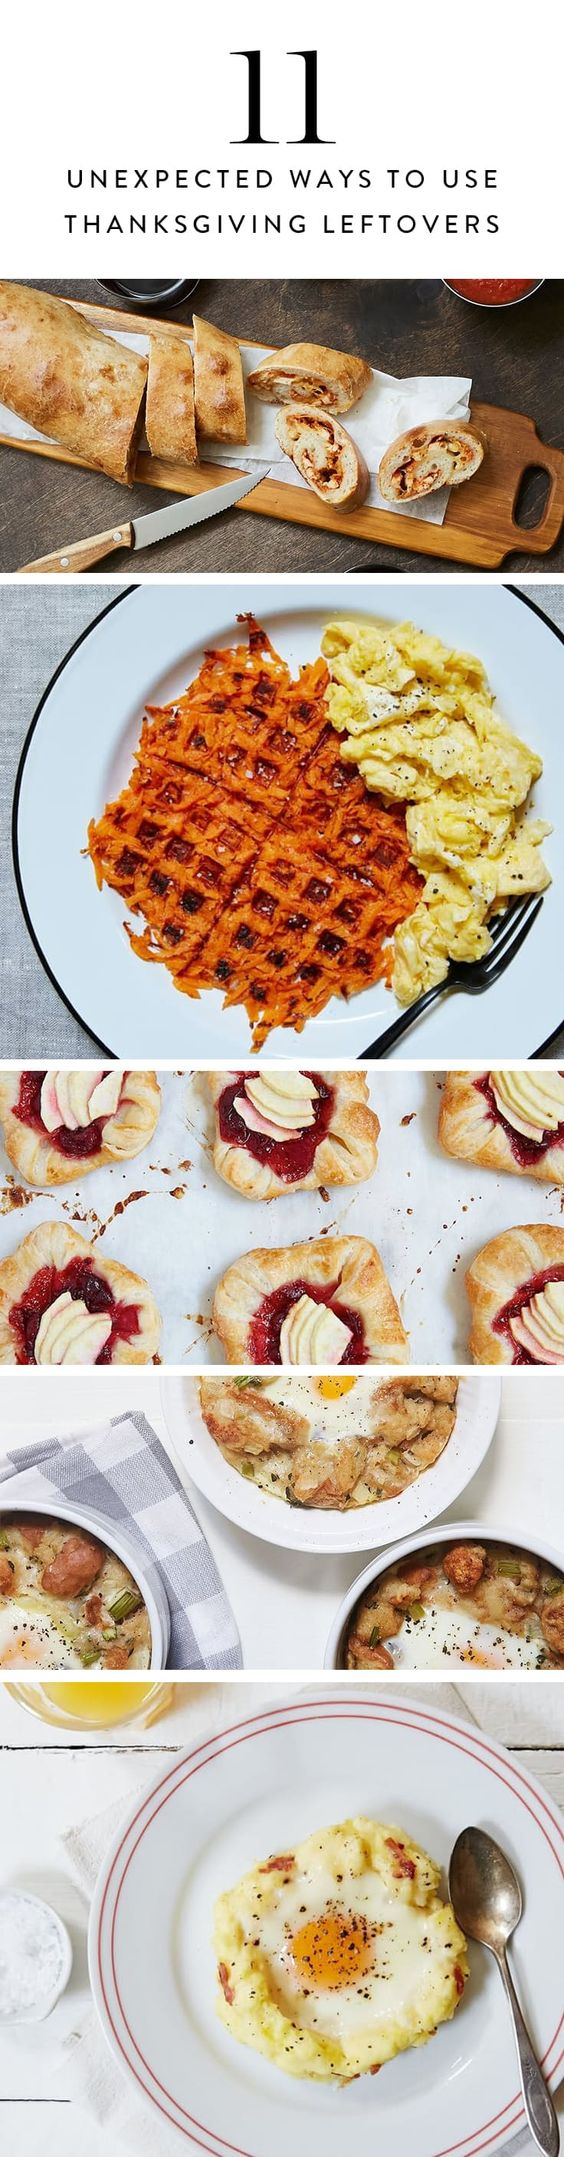 11 Unexpected Recipes to Make with Thanksgiving Leftovers via @PureWow